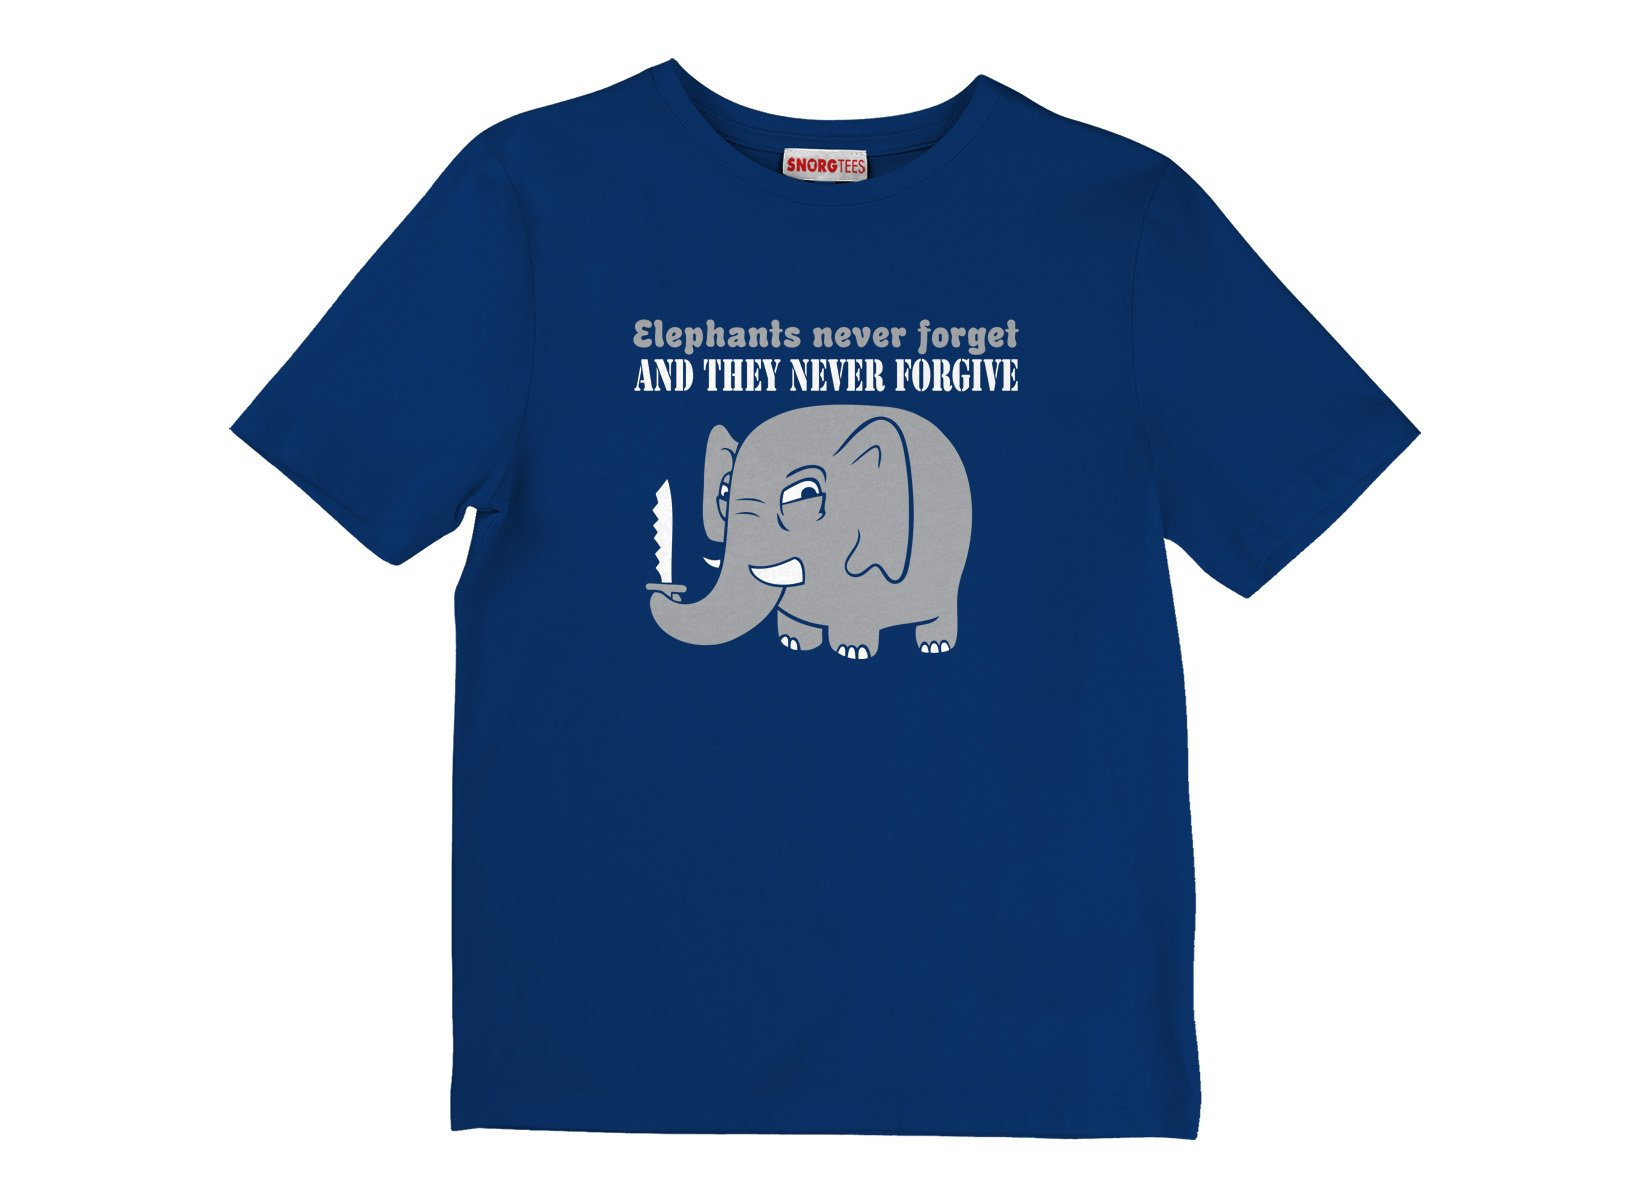 Elephants Never Forgive on Kids T-Shirt